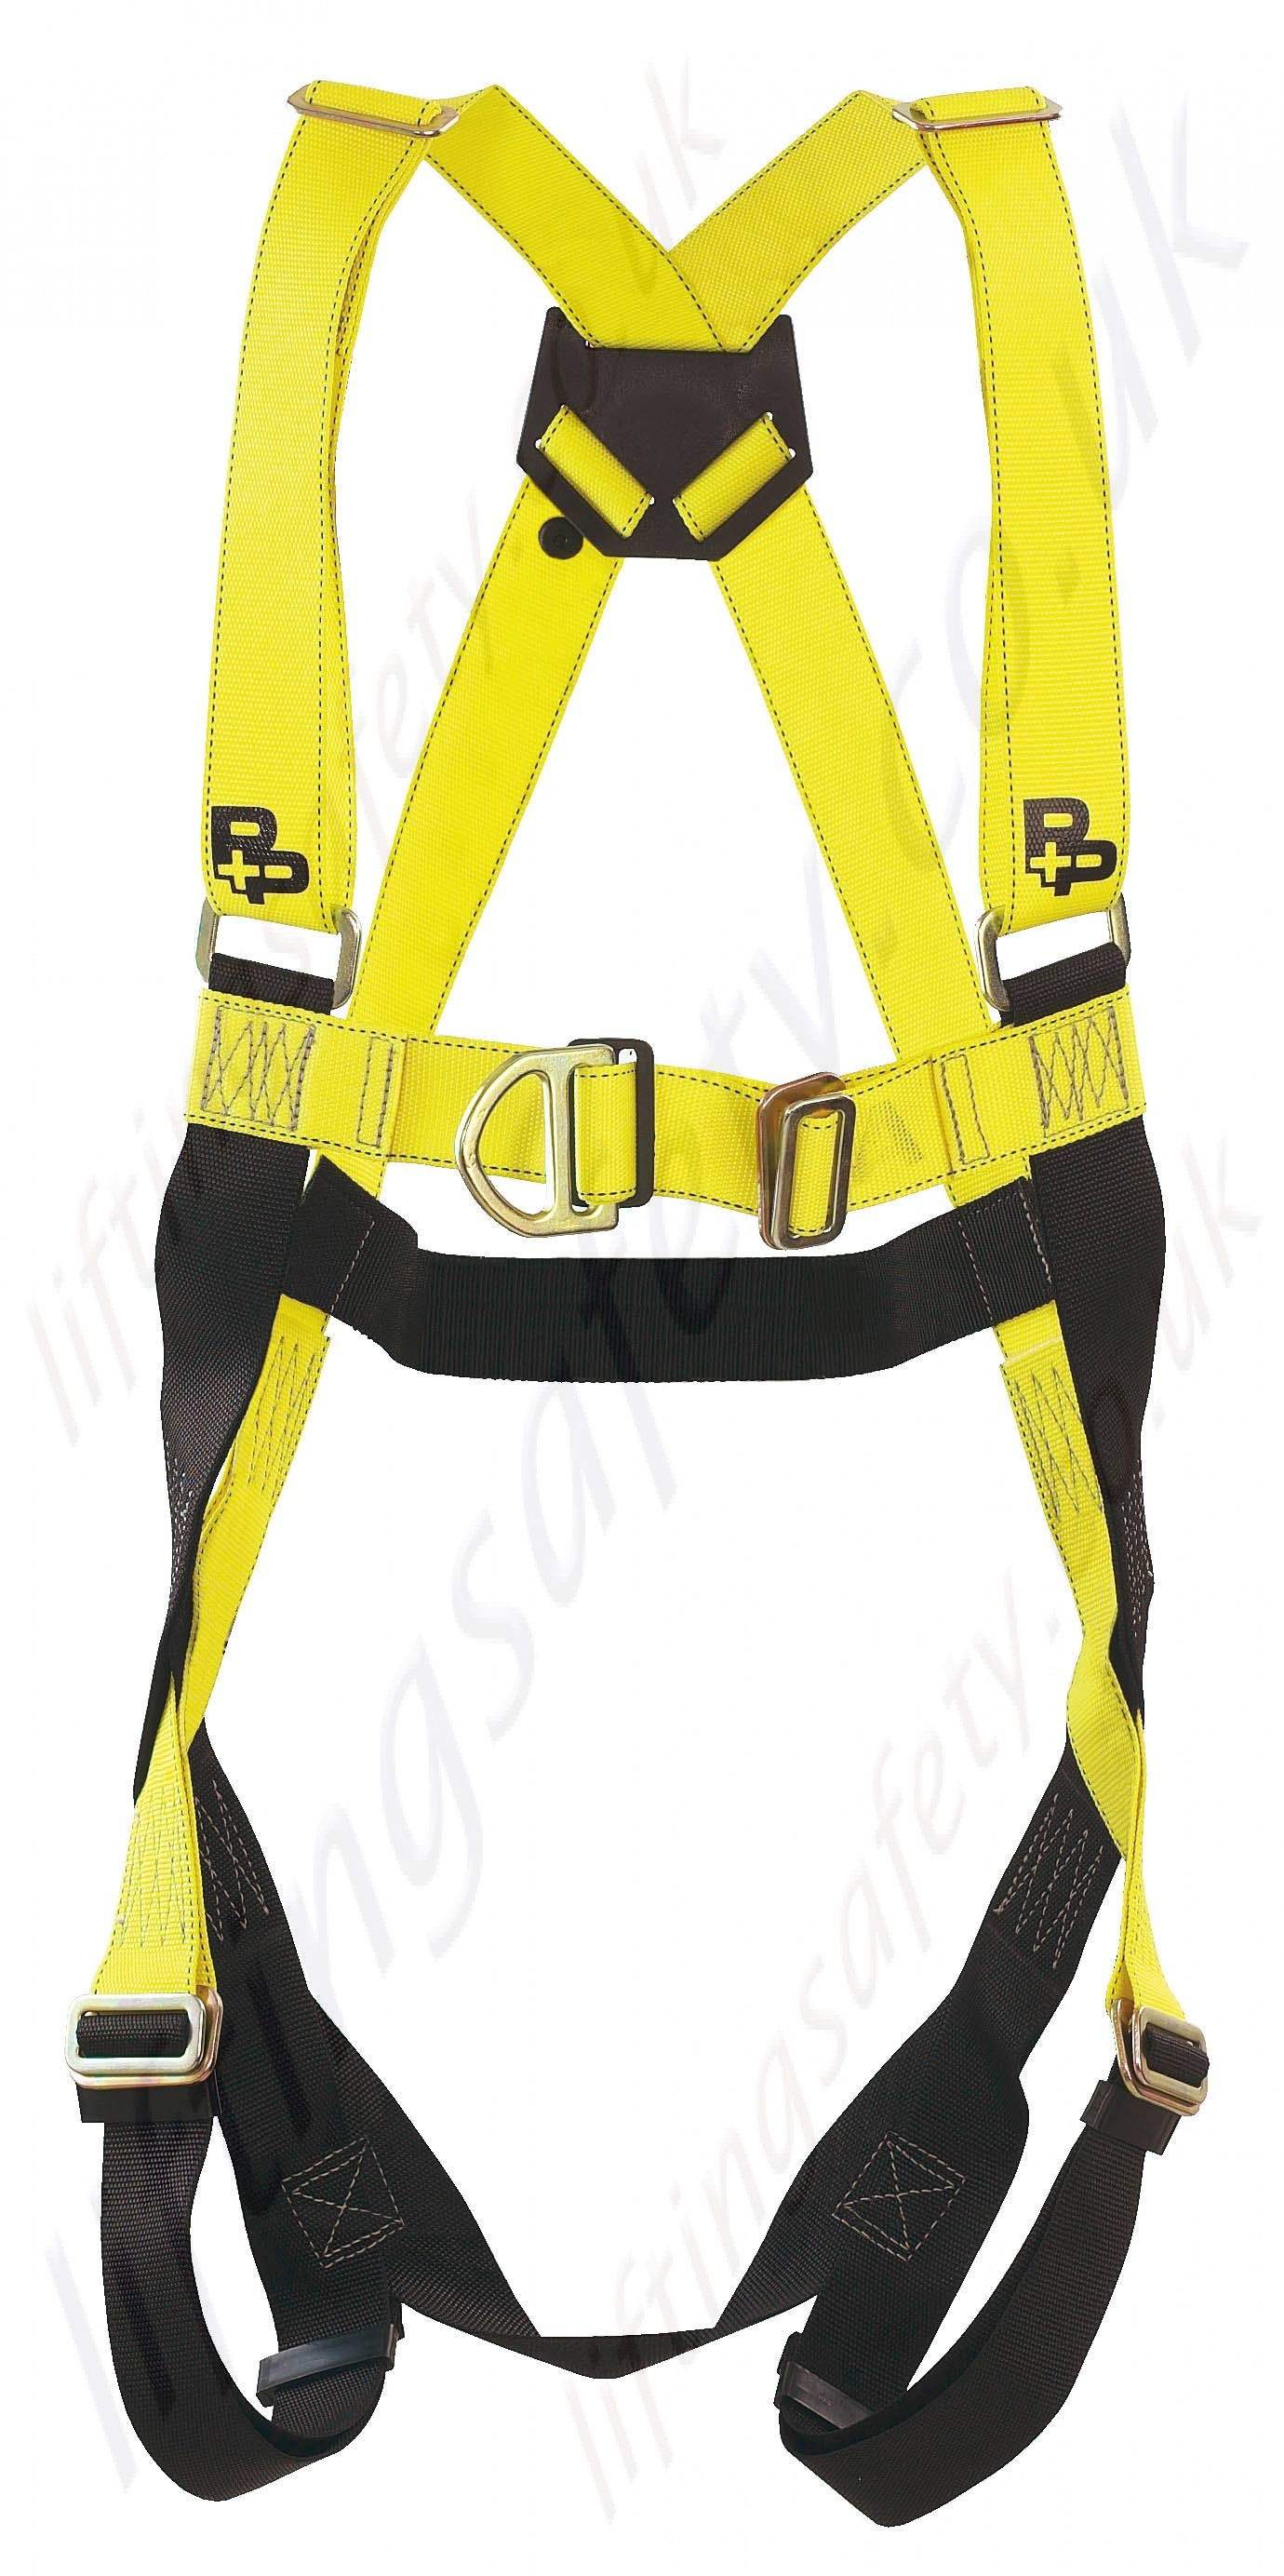 P P Safety Two Point Fall Arrest Harness With Front